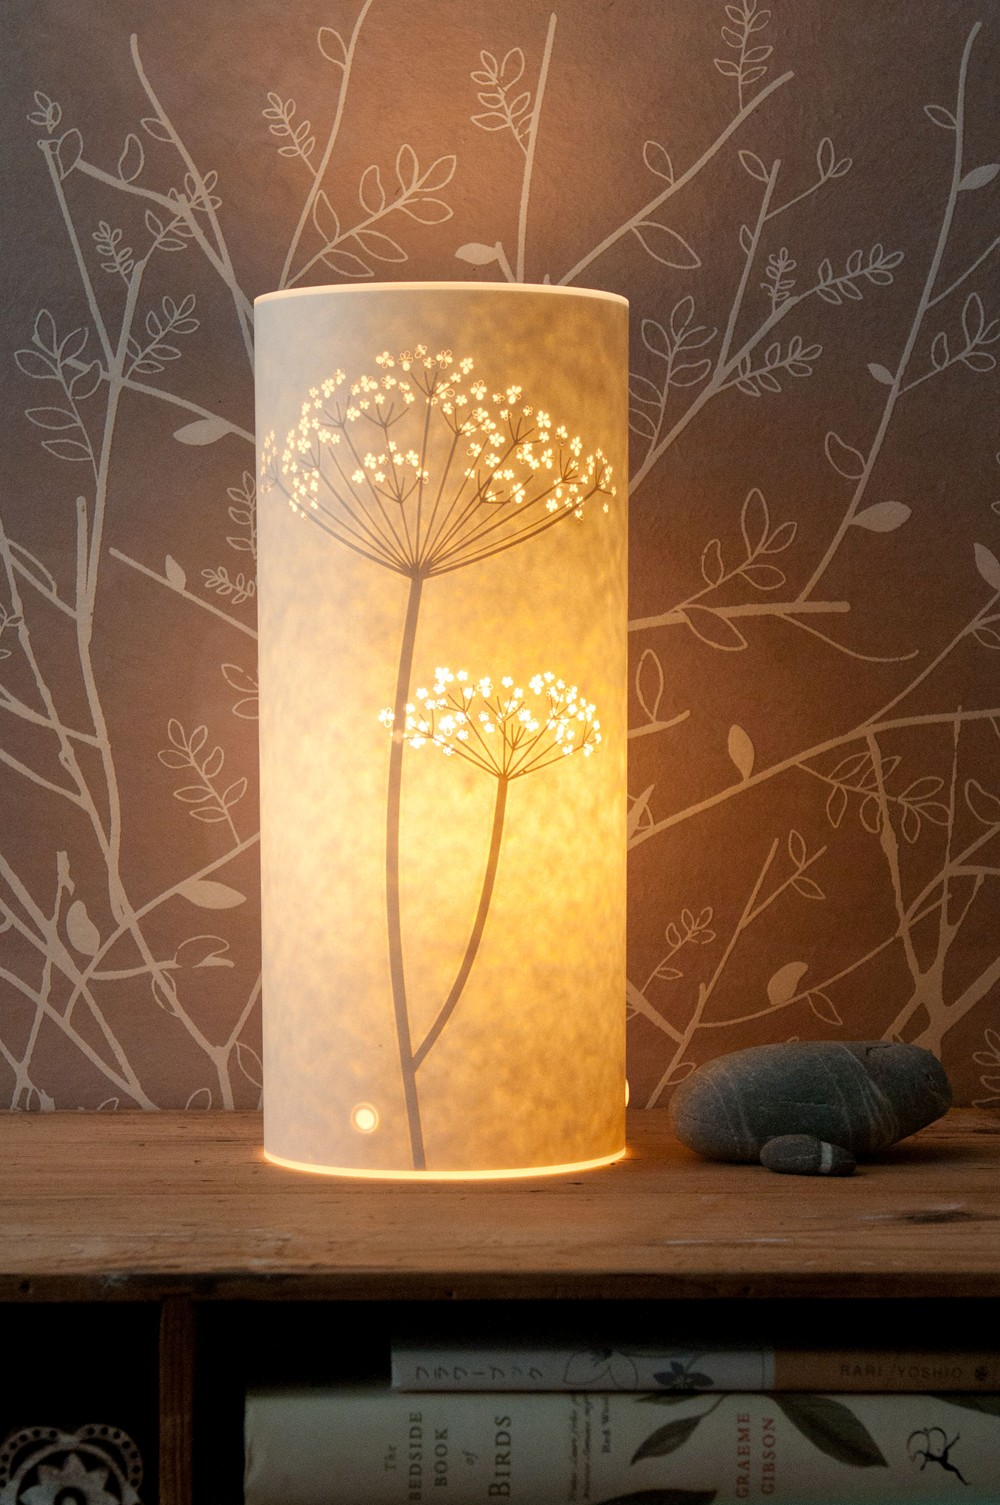 Beautiful Lamps from Radiance